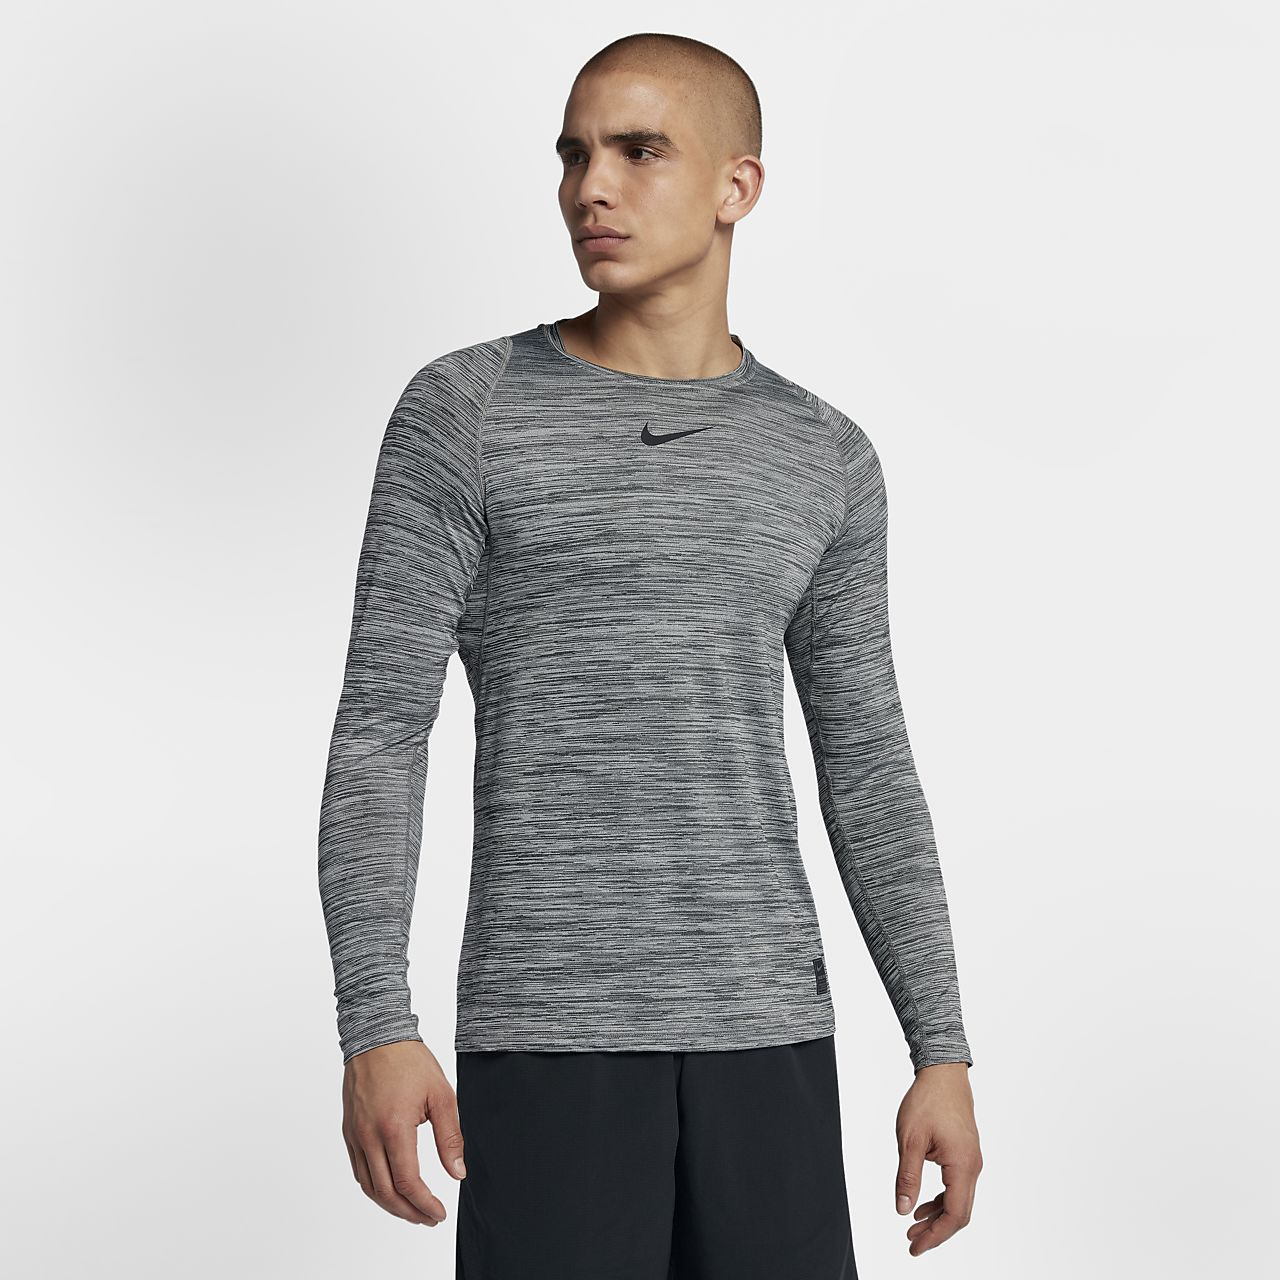 44508200 Nike Pro Fitted Men's Long Sleeve Training Top. Nike.com